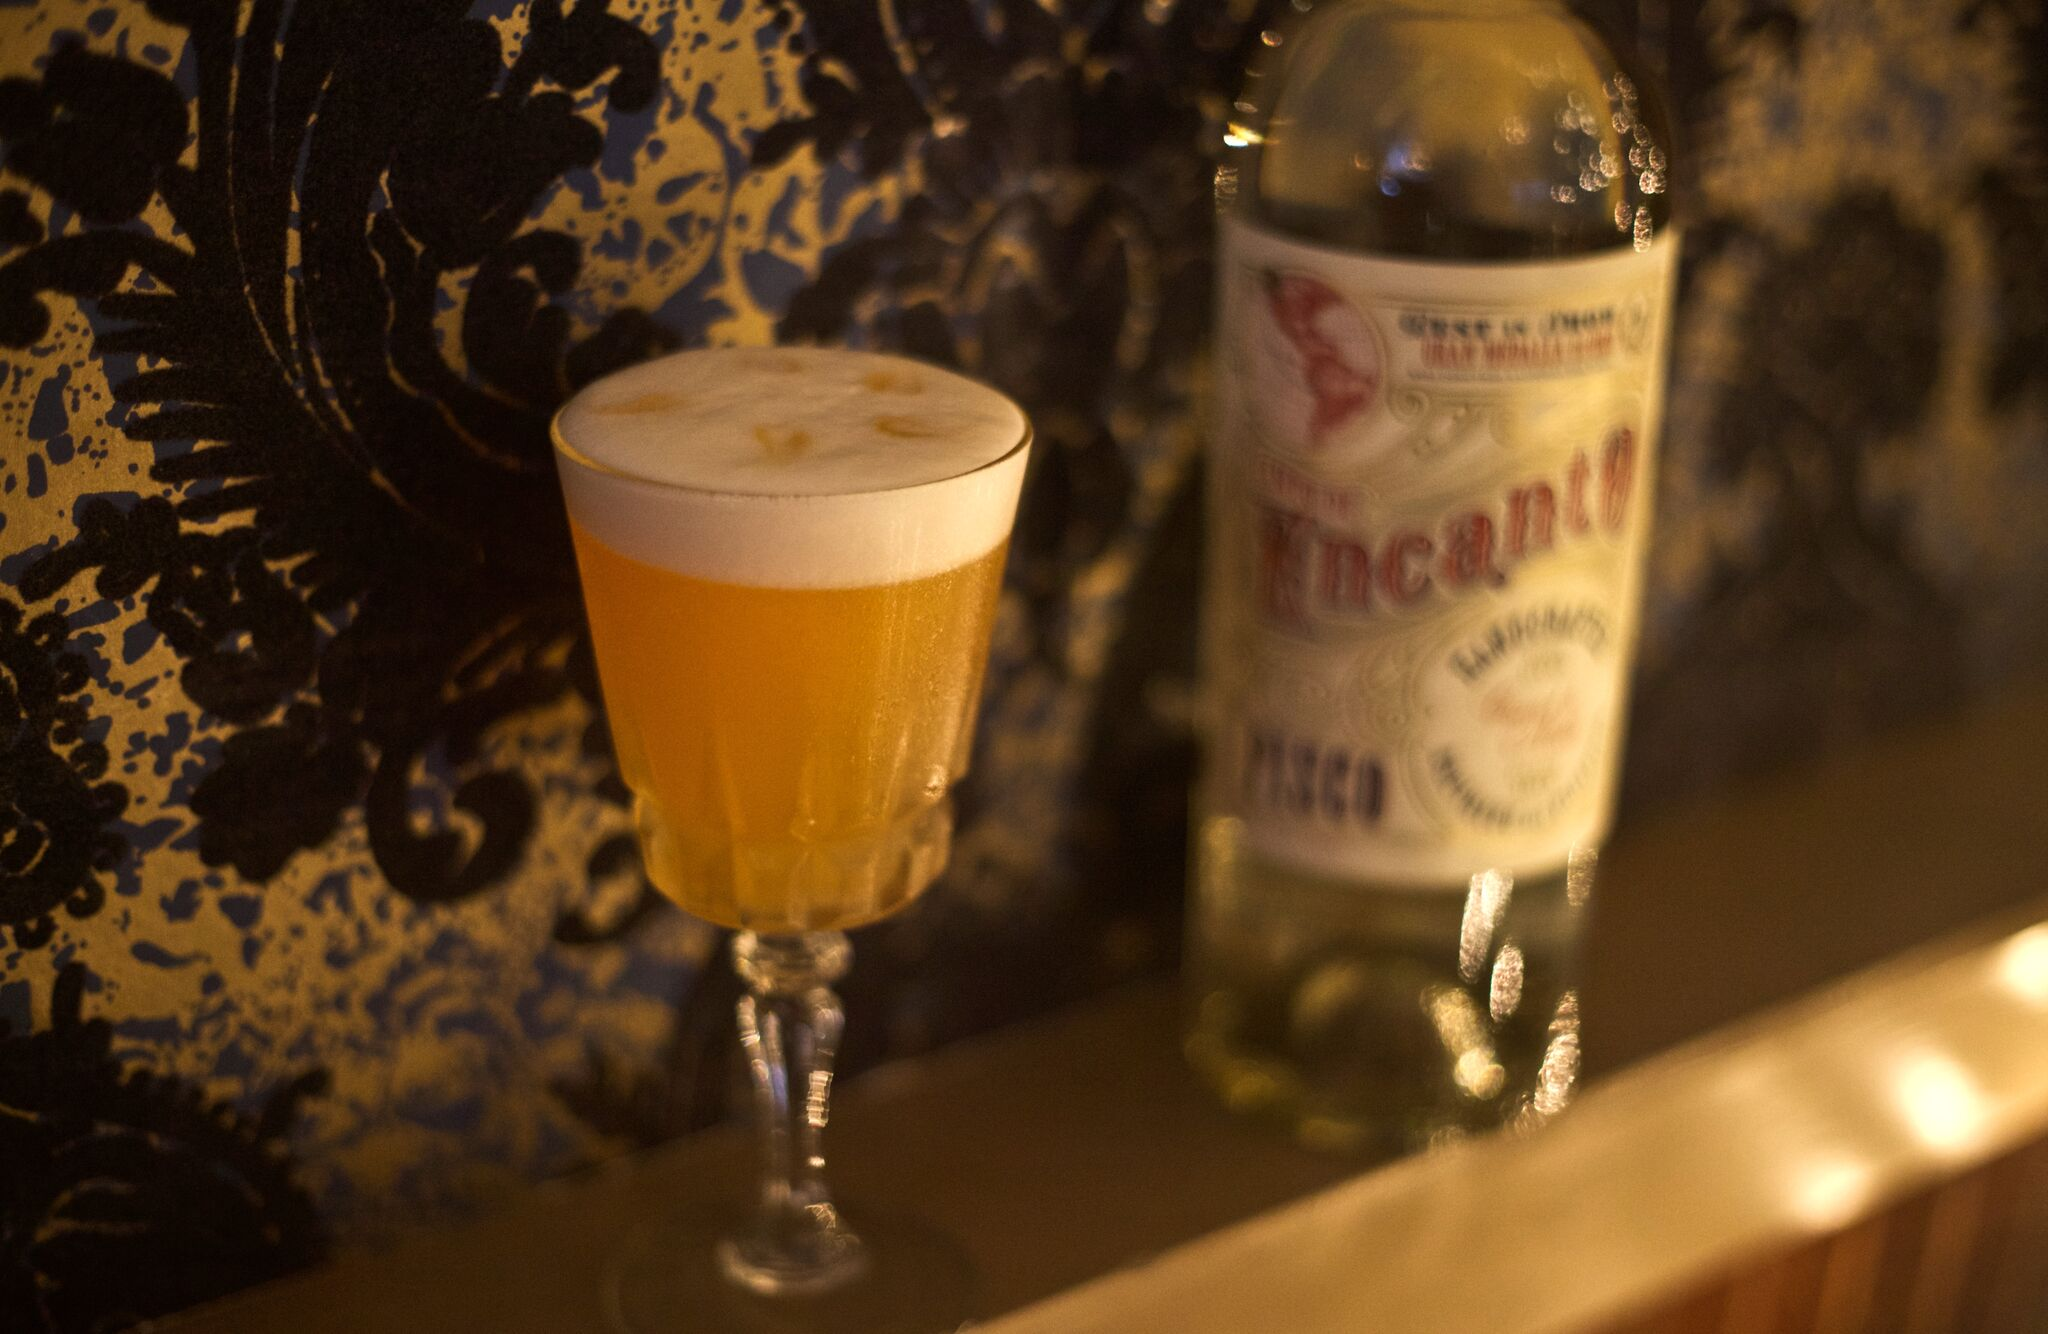 The Sea Stir's twist on a classic pisco sour